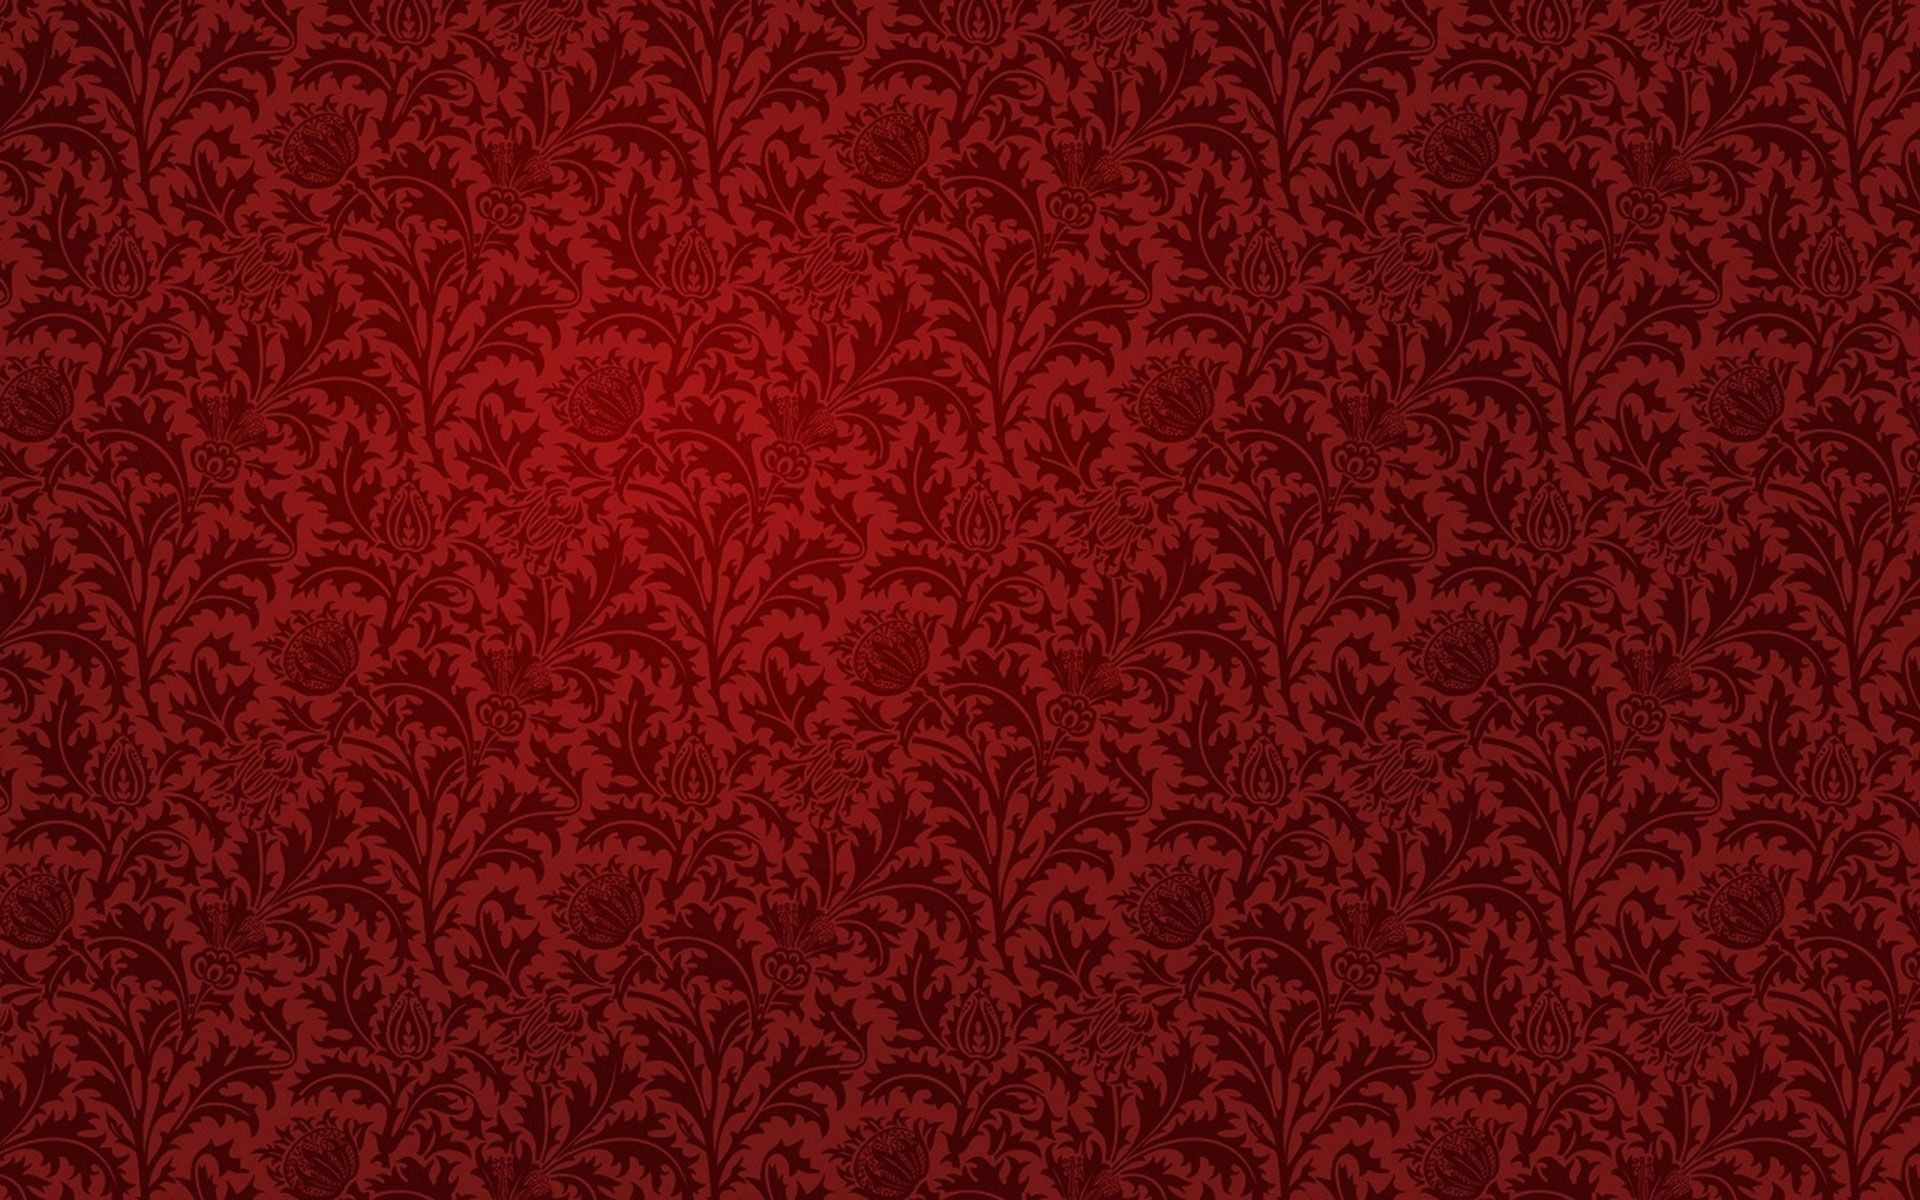 Red Wallpaper Hd Vintage Flowers Wallpaper Red Gold